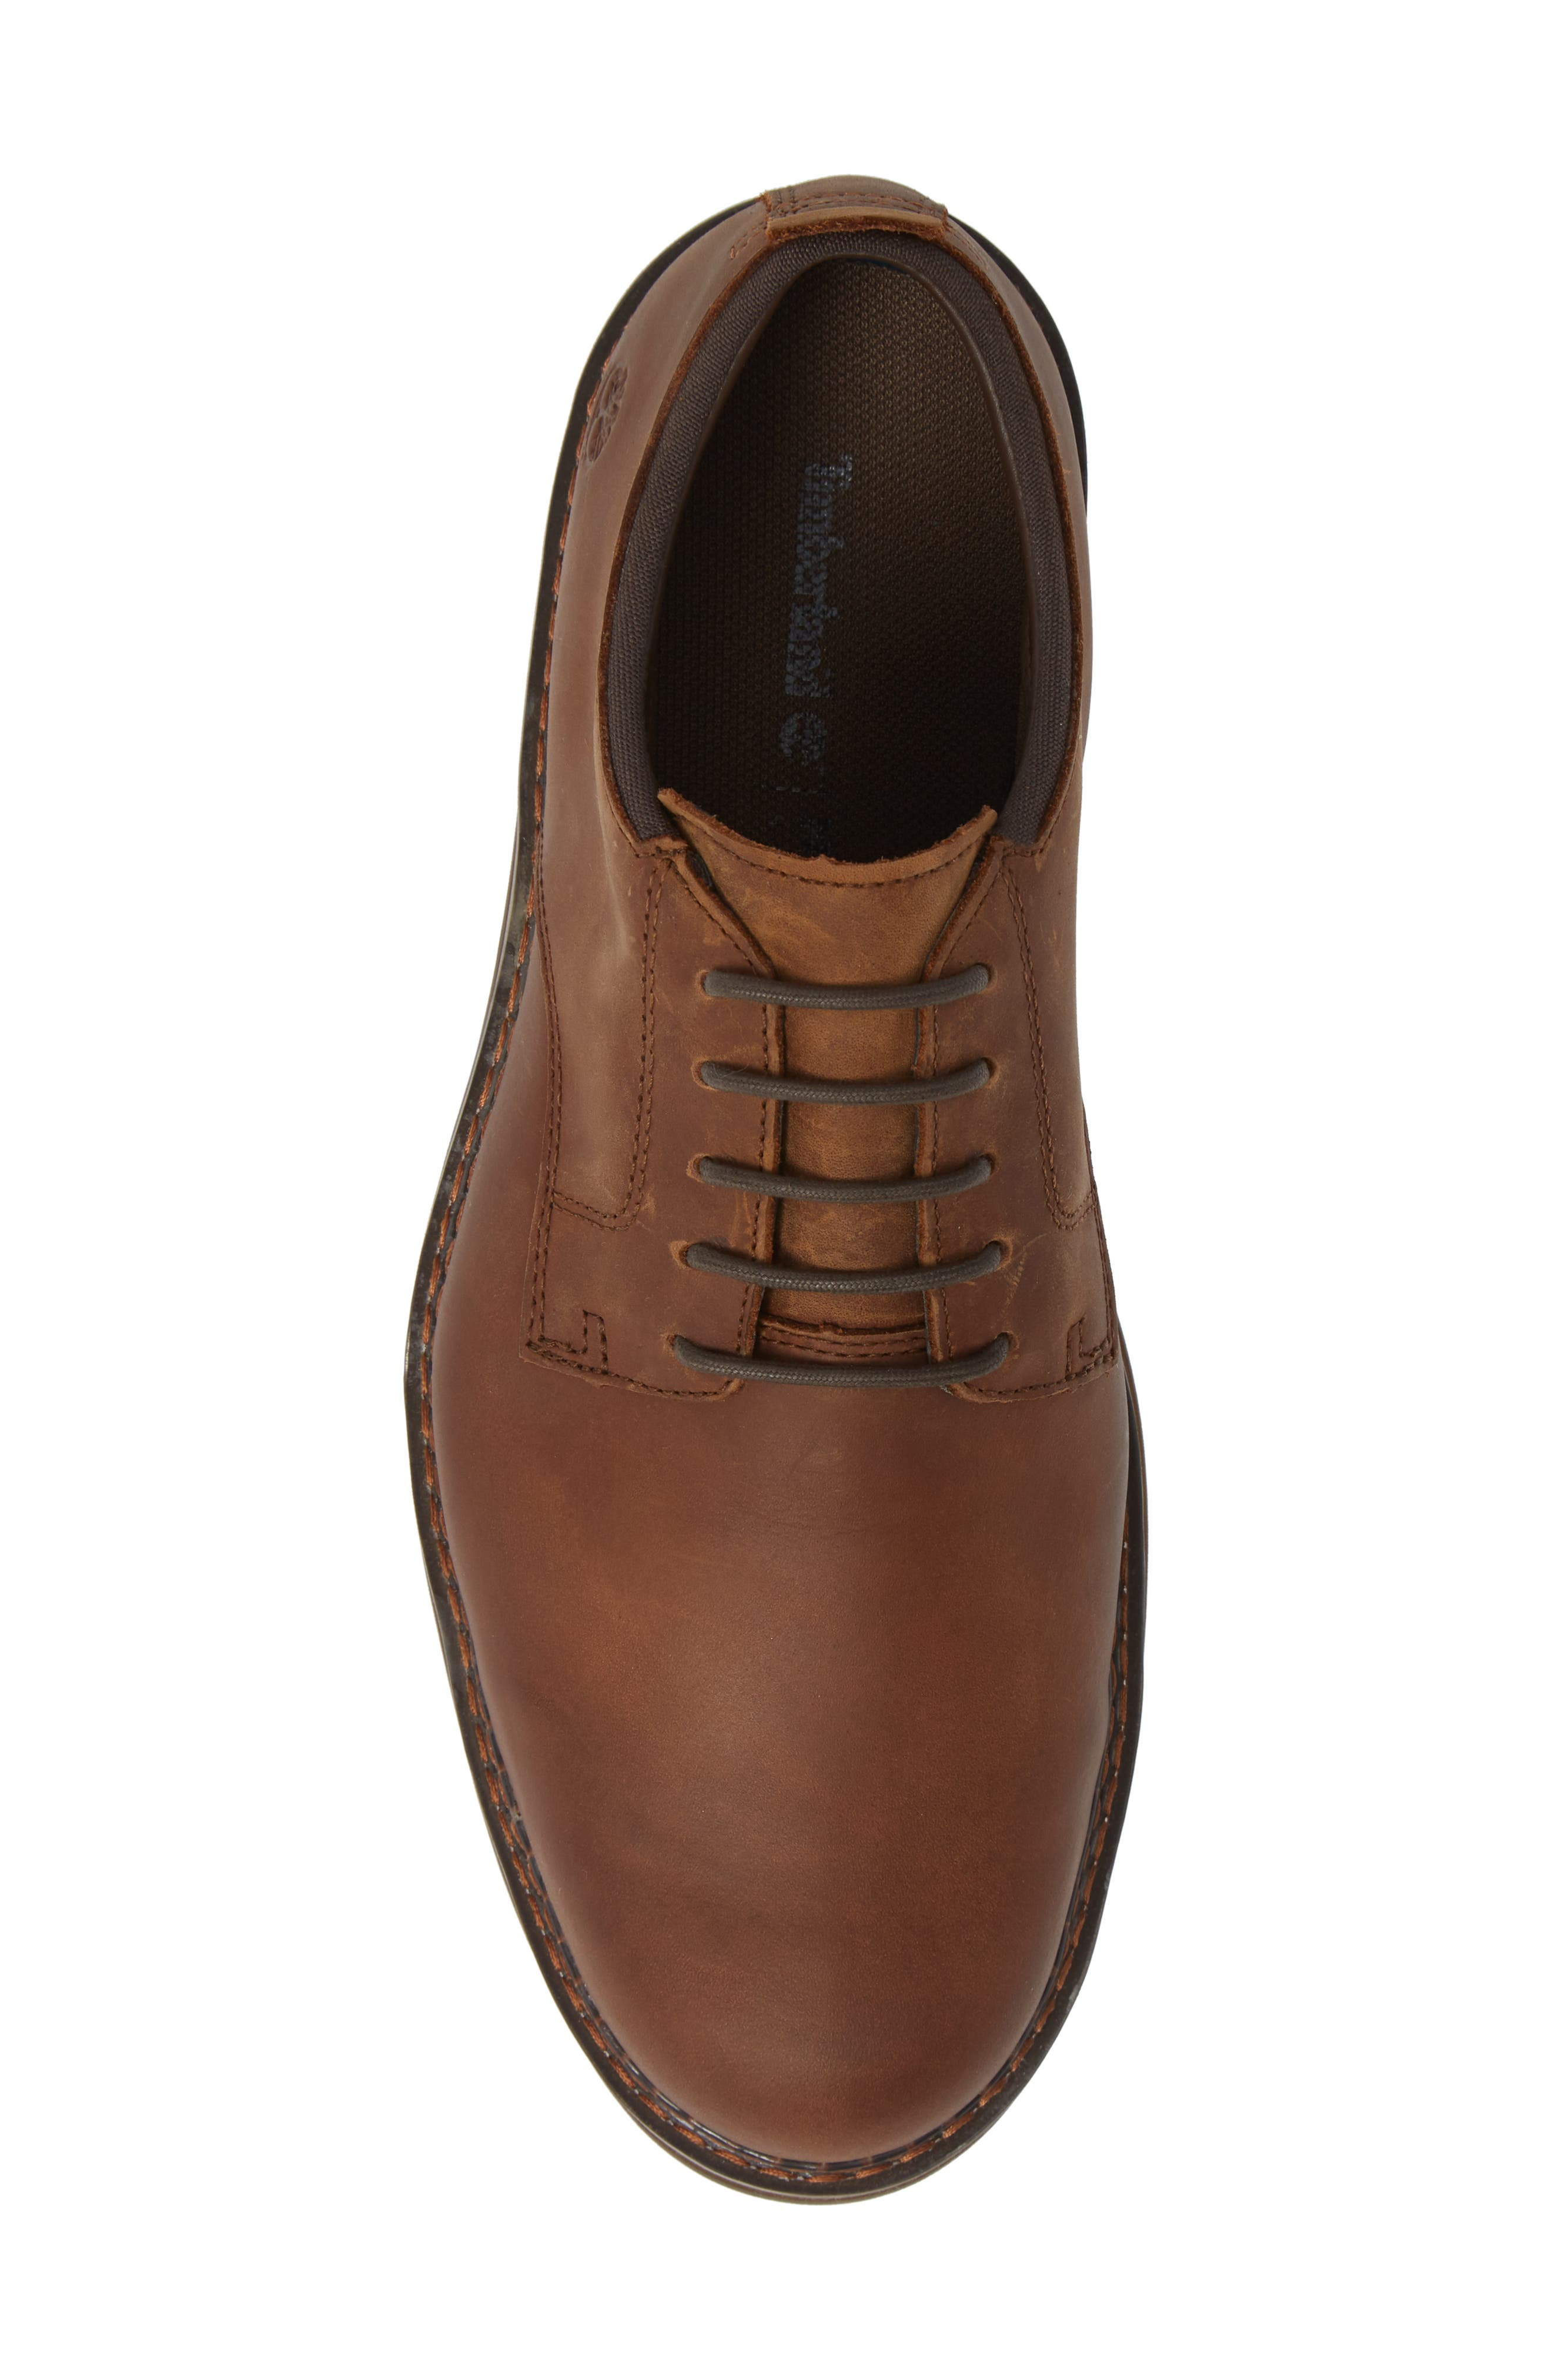 Squall Canyon Waterproof Plain Toe Derby,                             Alternate thumbnail 5, color,                             COPPER LEATHER